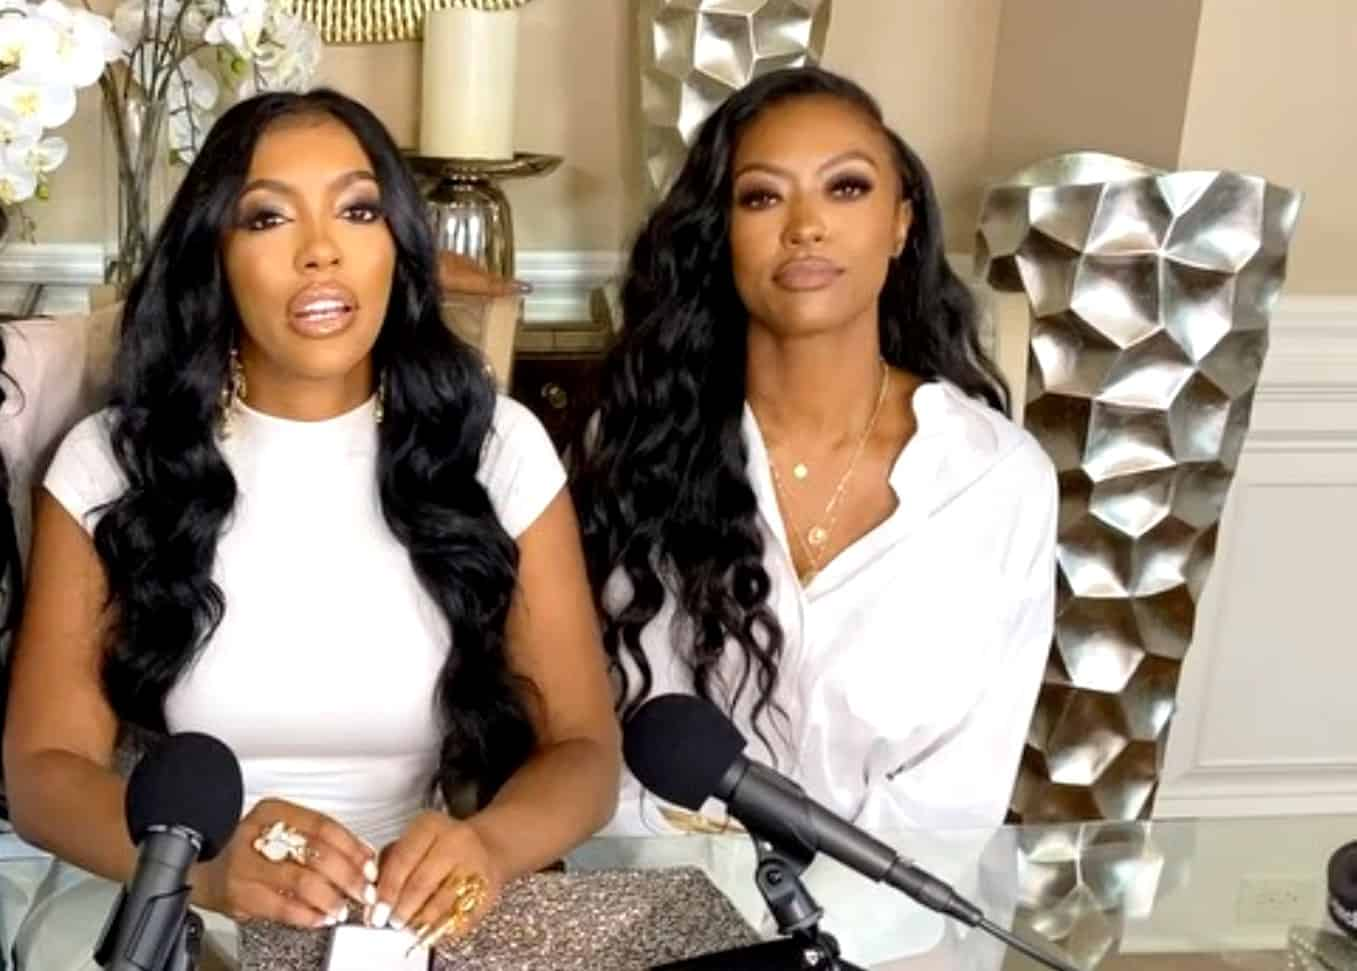 """PHOTO: Porsha Williams' Sister Lauren Shares Picture of Her Mom as Porsha Williams Blasts Trolls For Messing With Her Family, RHOA Star Claims """"She Has Idea"""" Who's Behind It as Fans Speculate"""